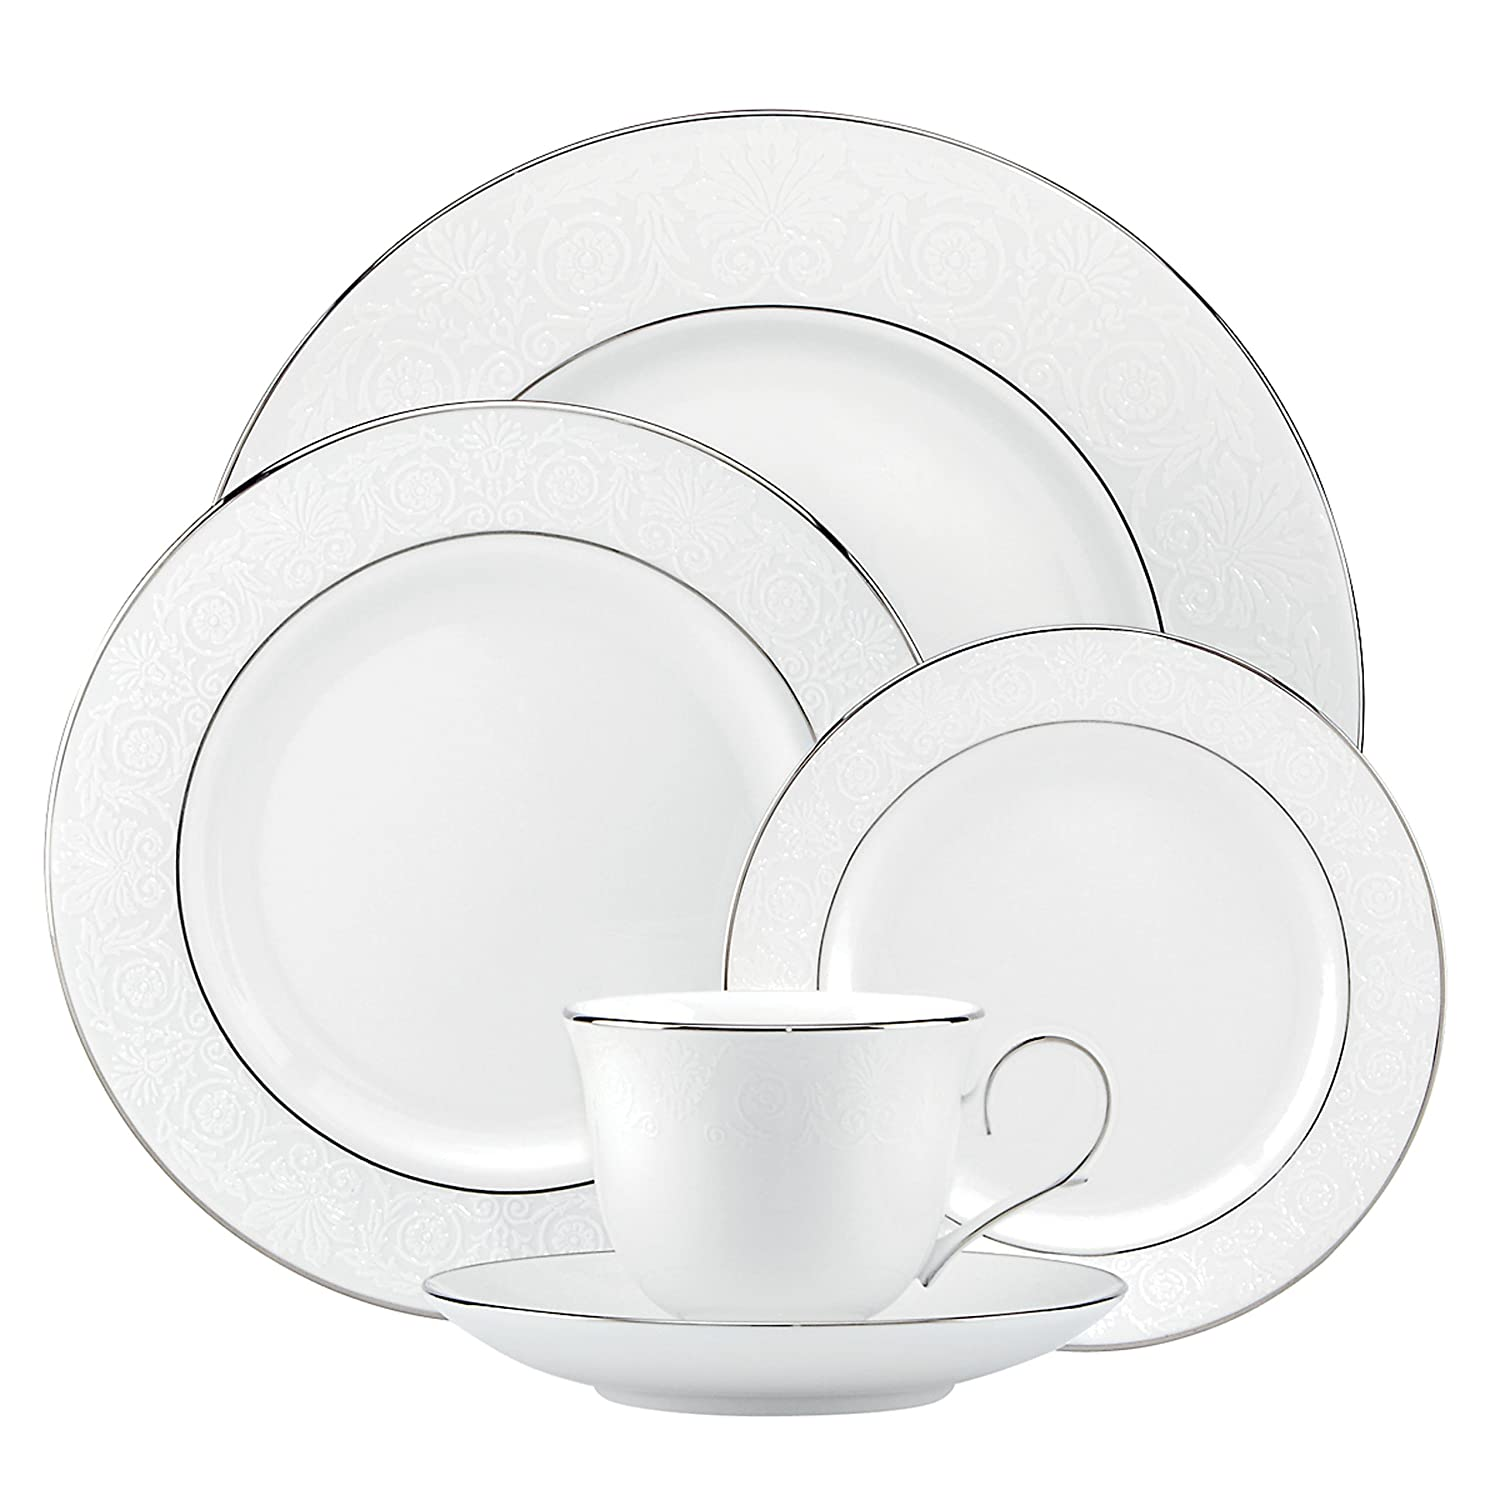 Amazon.com: Lenox 837593 Artemis 5-Piece Place Setting, White ...